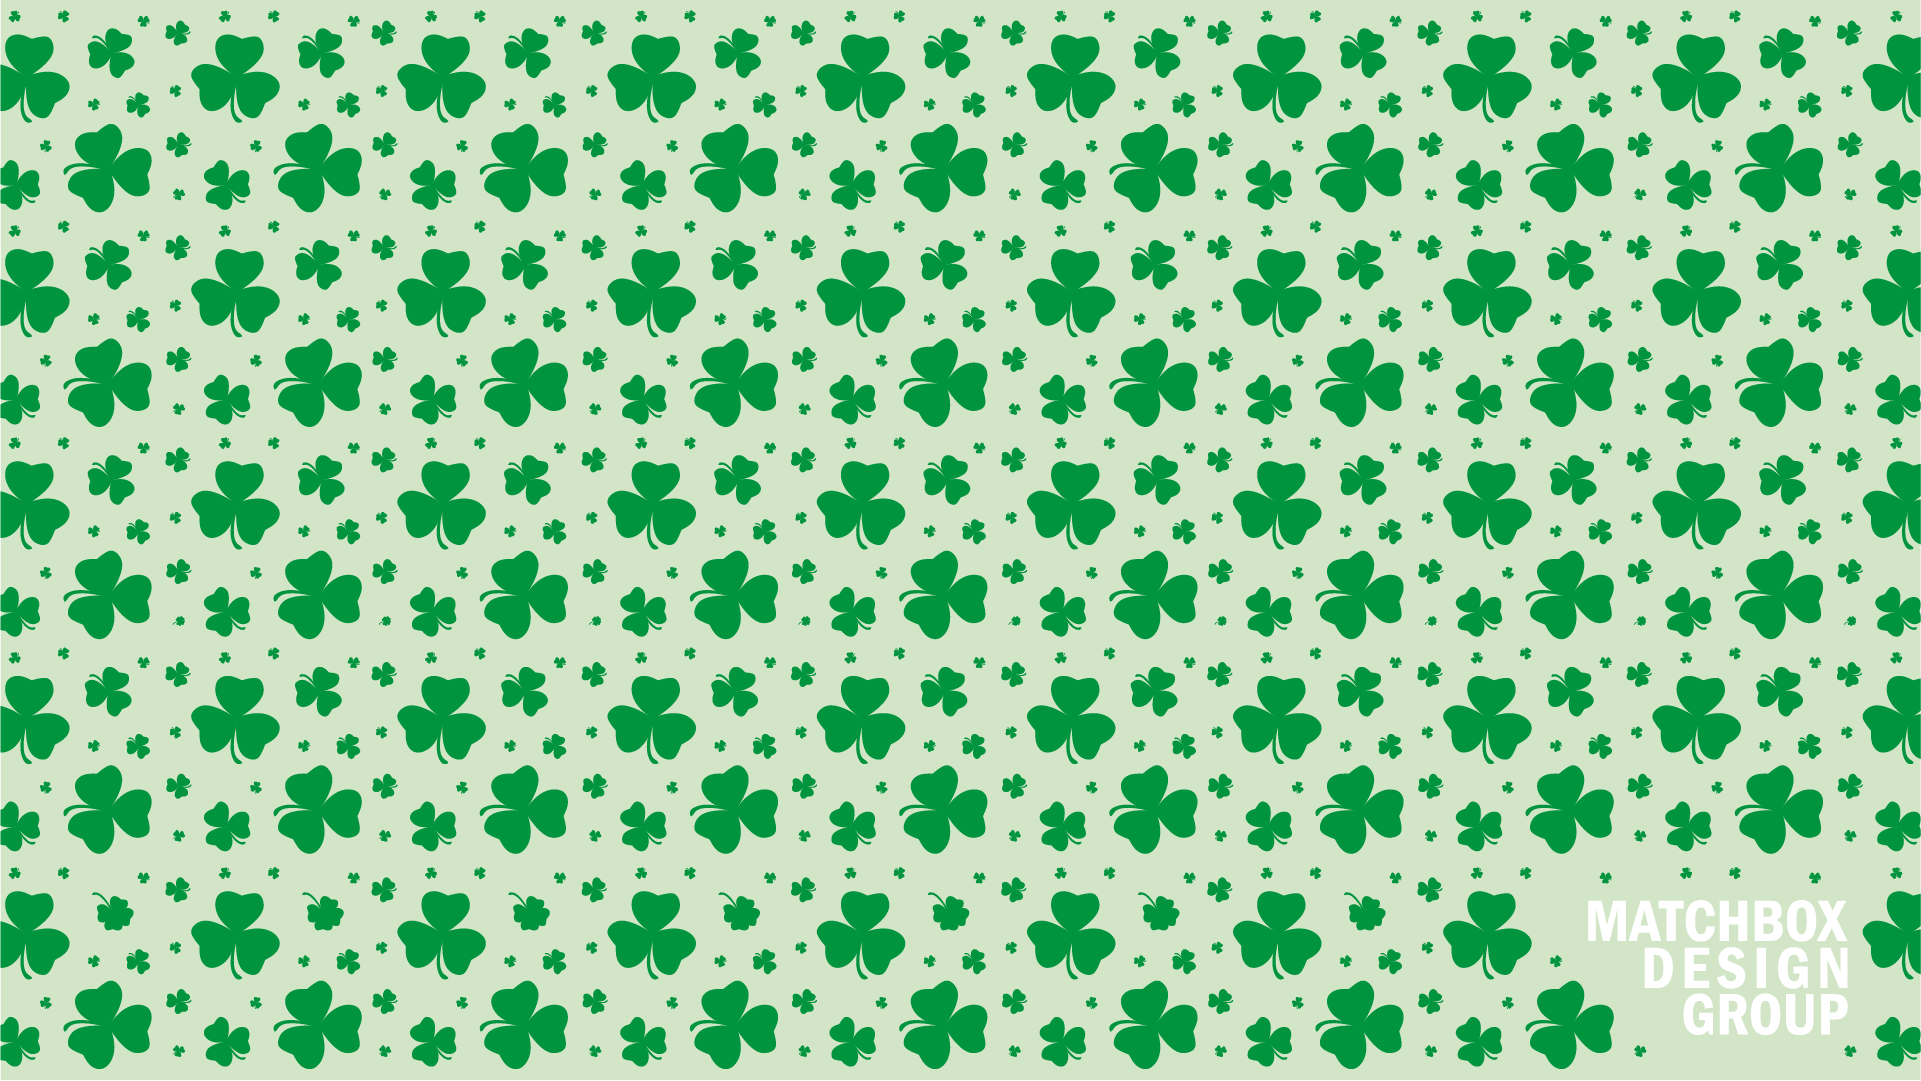 St Patricks Day Wallpaper Matchbox Design Group St Louis MO 1921x1081